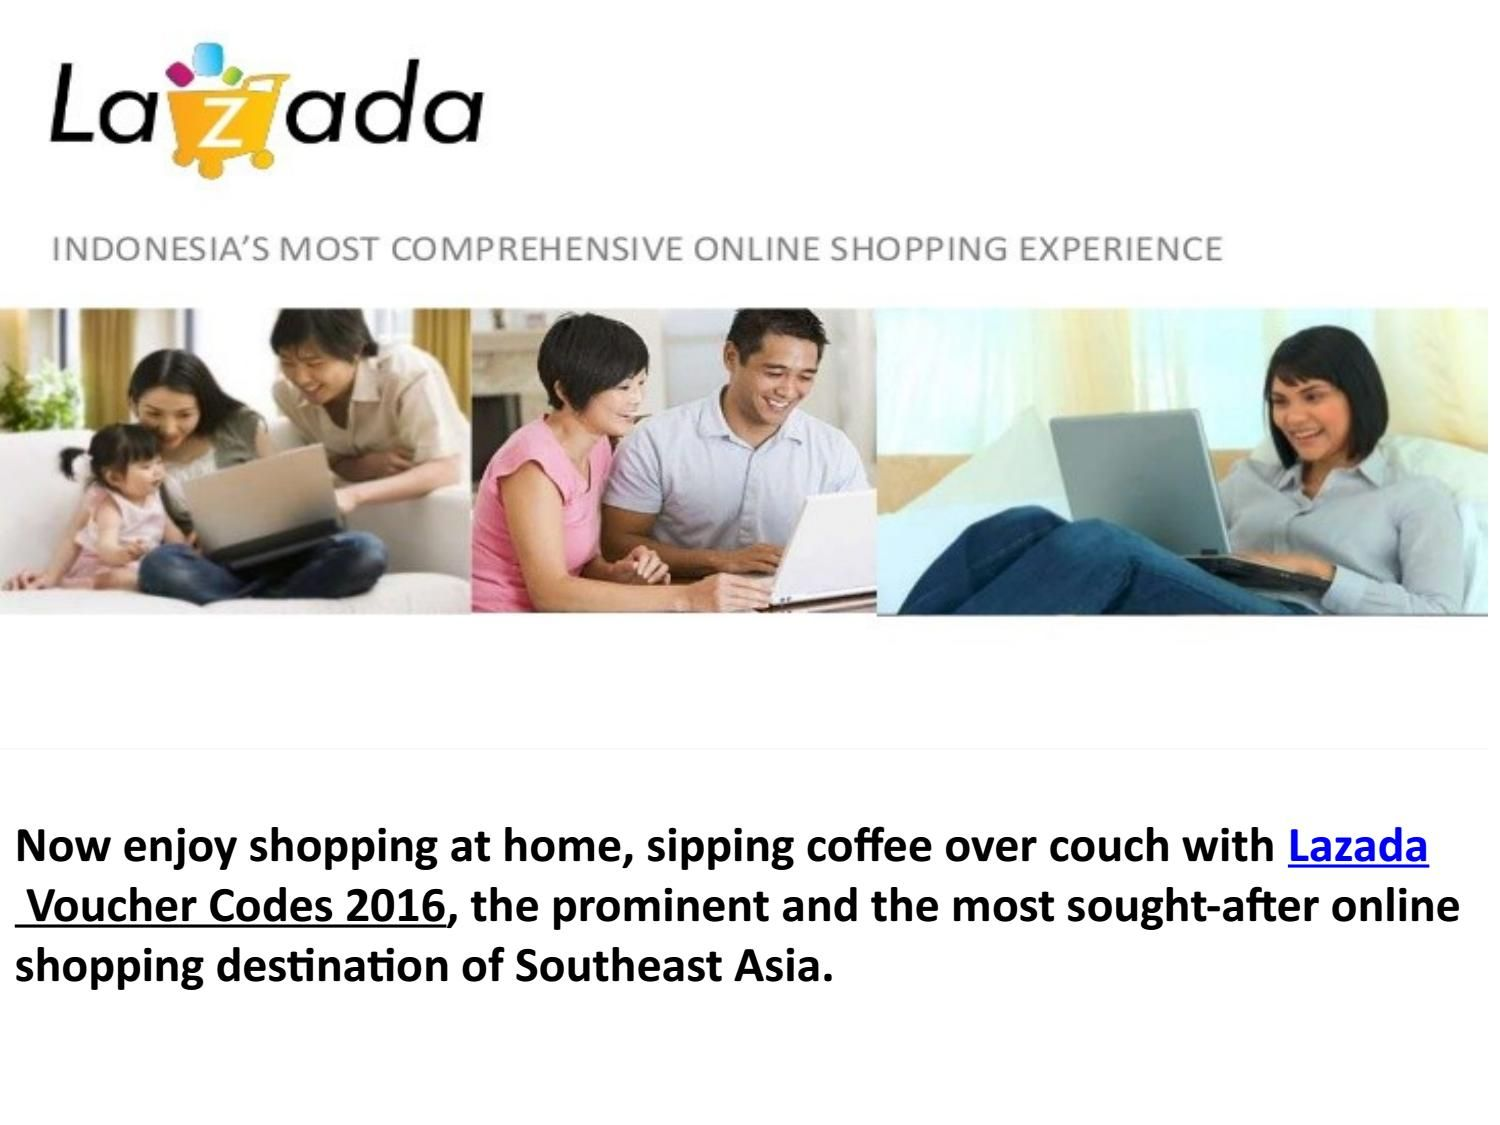 Sofa And Home Voucher Code Lazada Voucher Codes 2016 Lazada Voucher Codes Pinterest